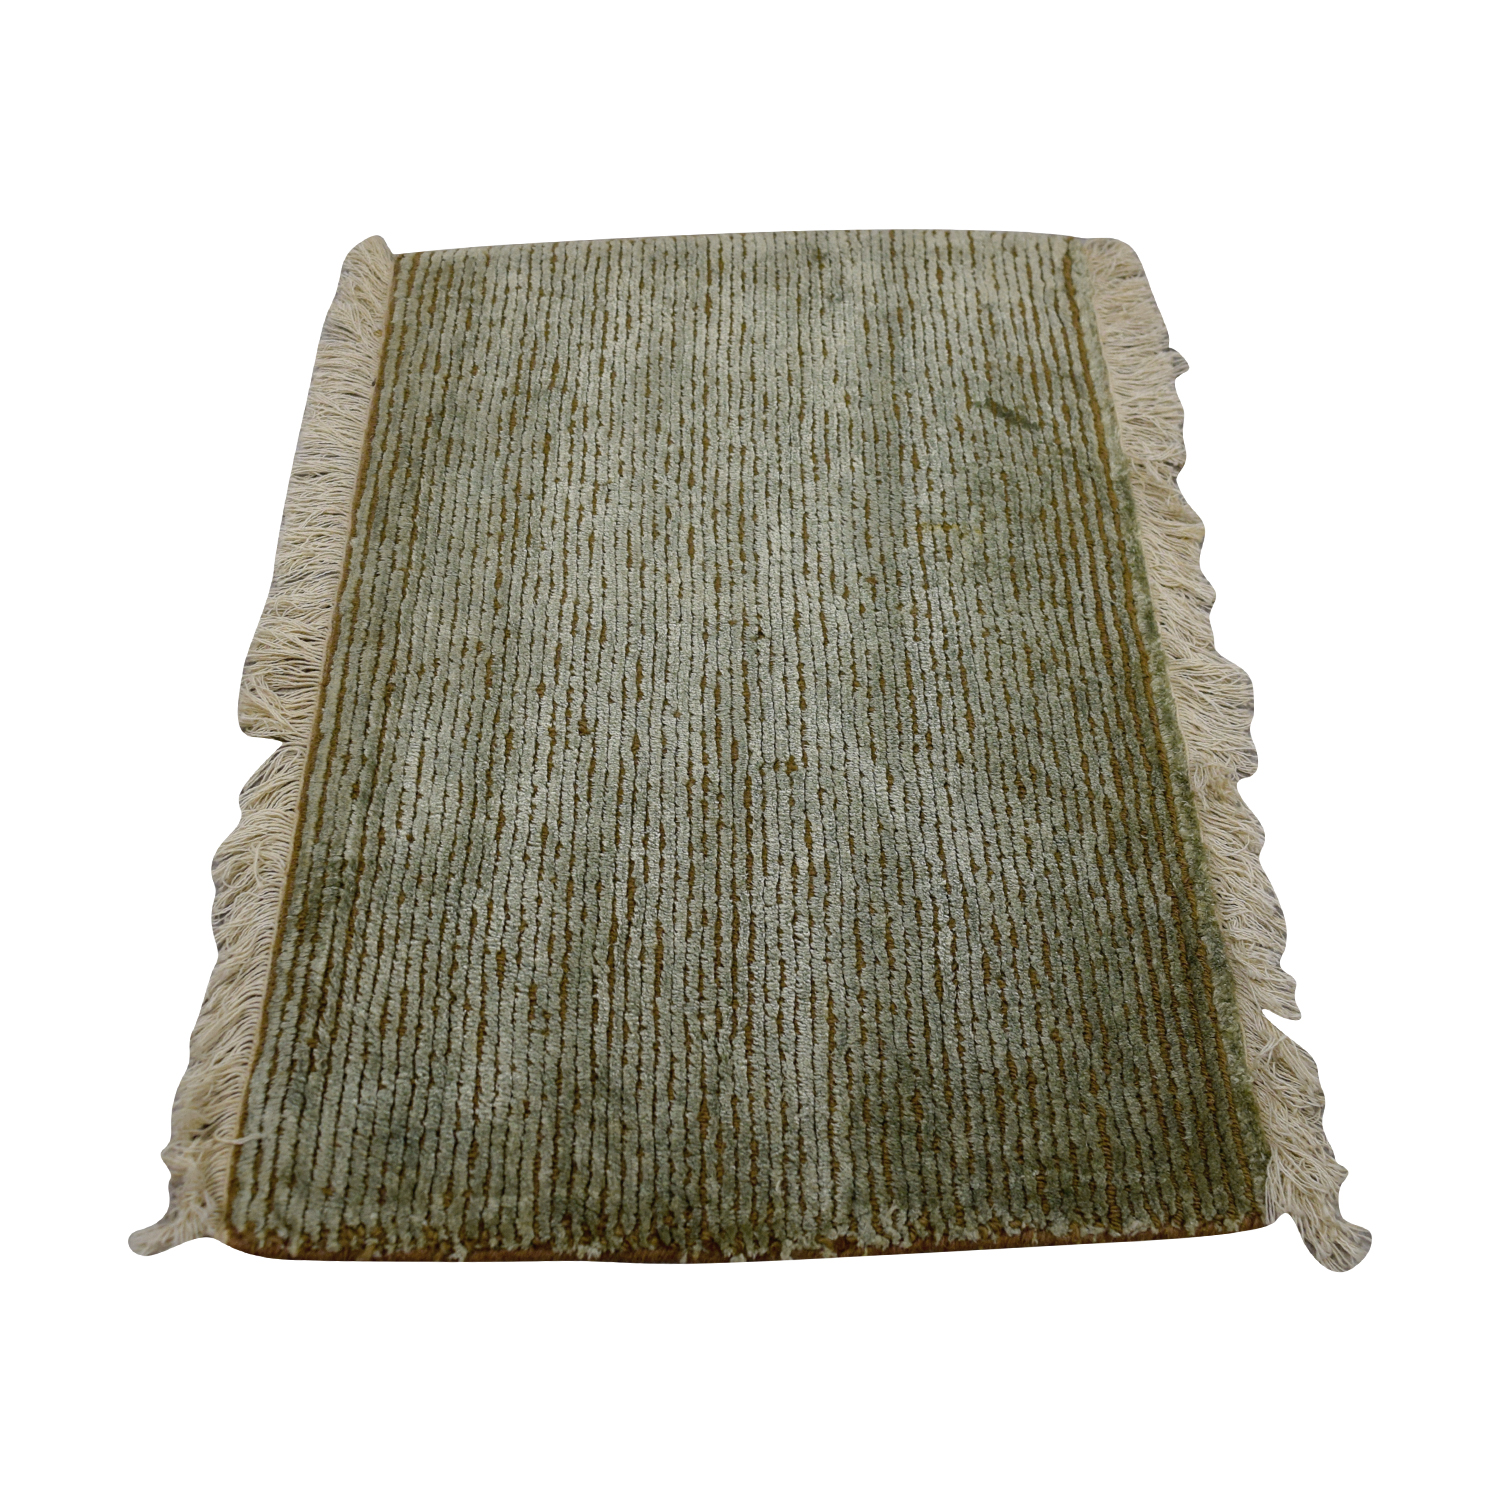 Obeetee Obeetee Green Entry Rug nj